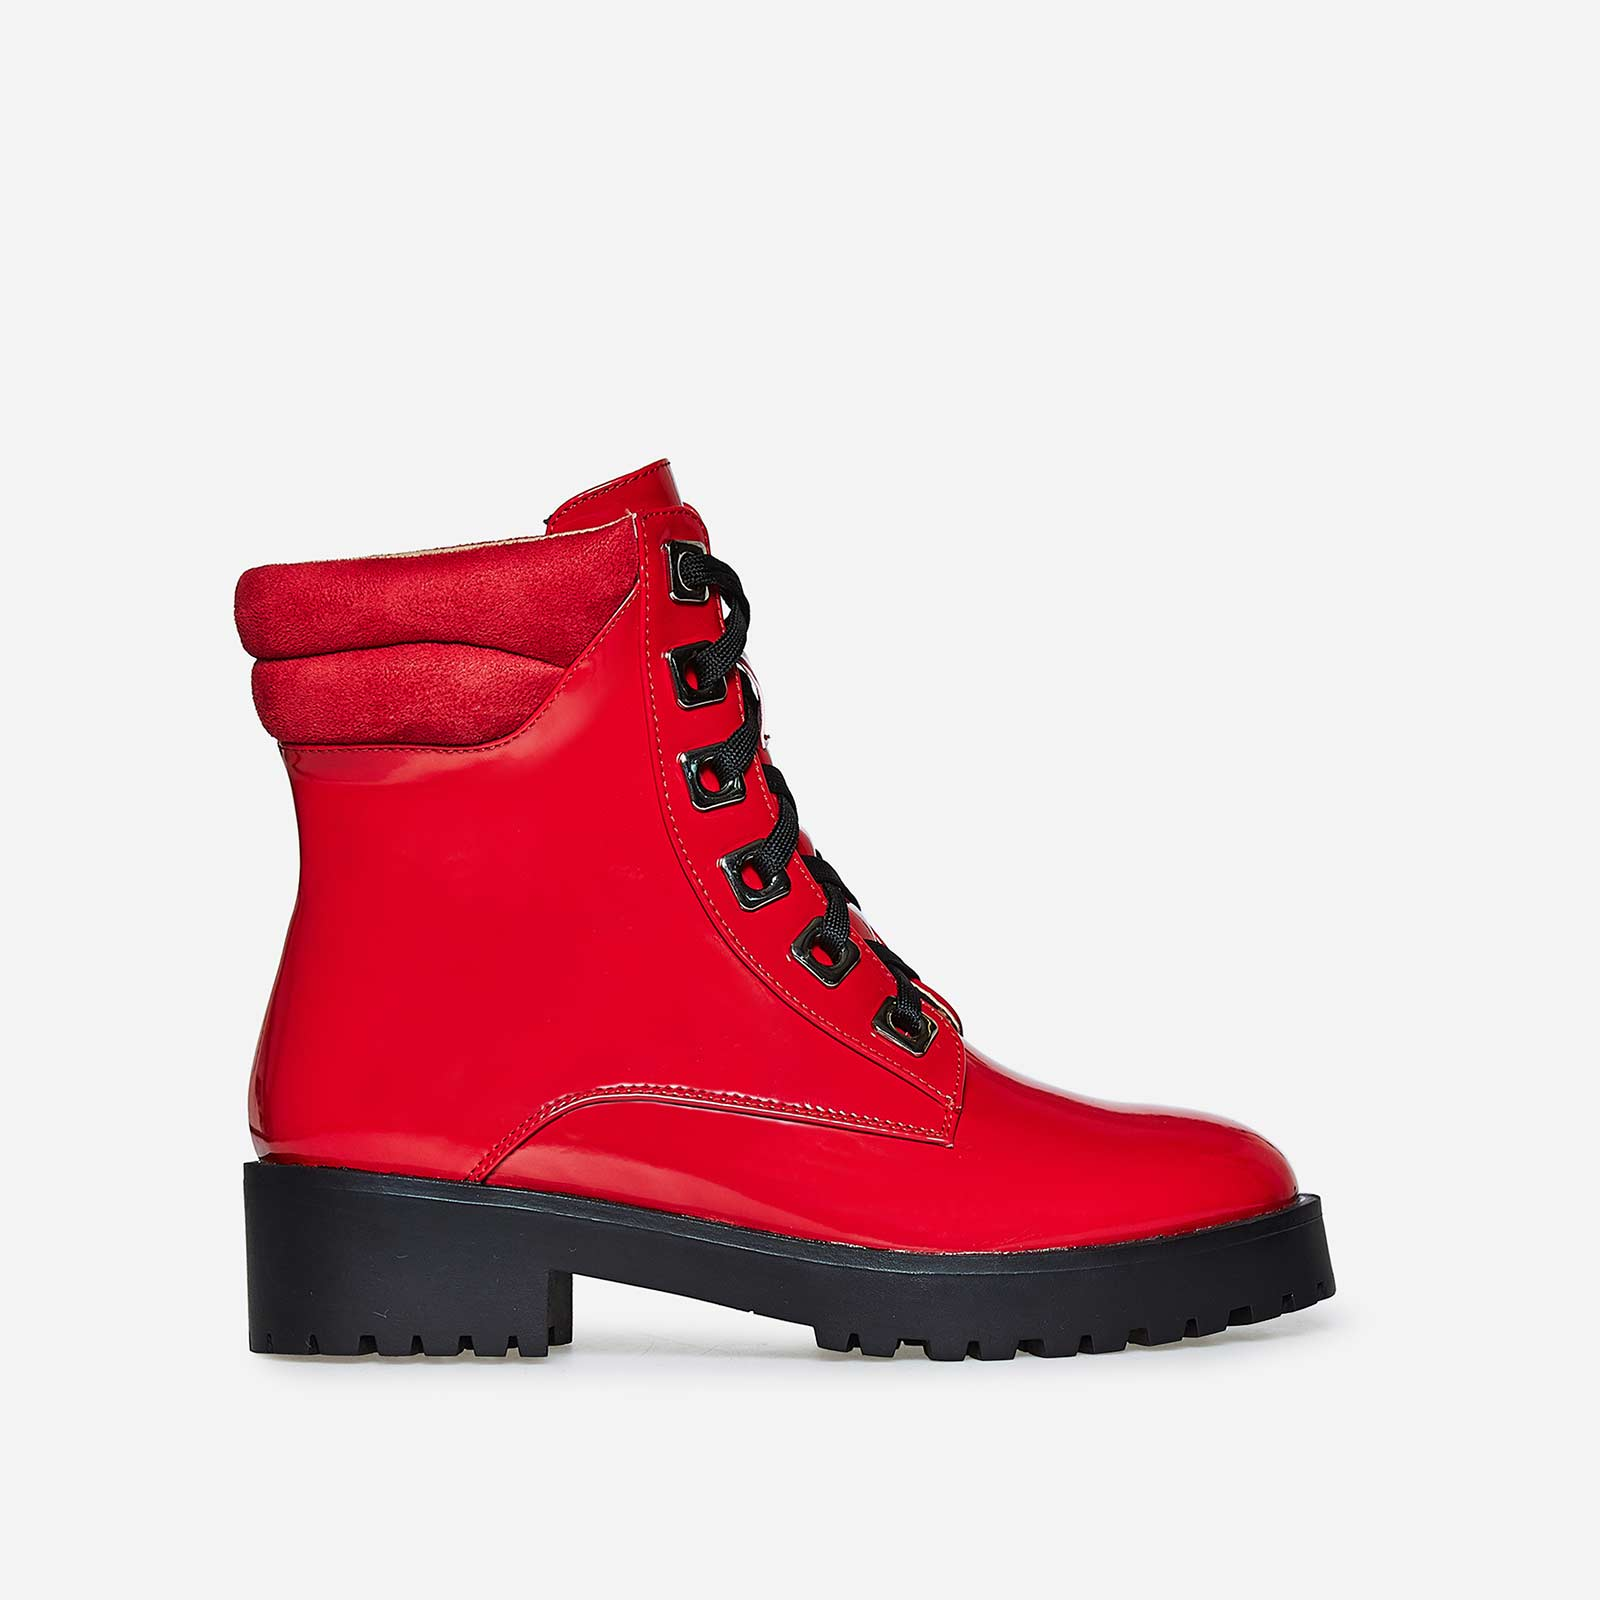 Marla Lace Up Biker Boot in Red Patent